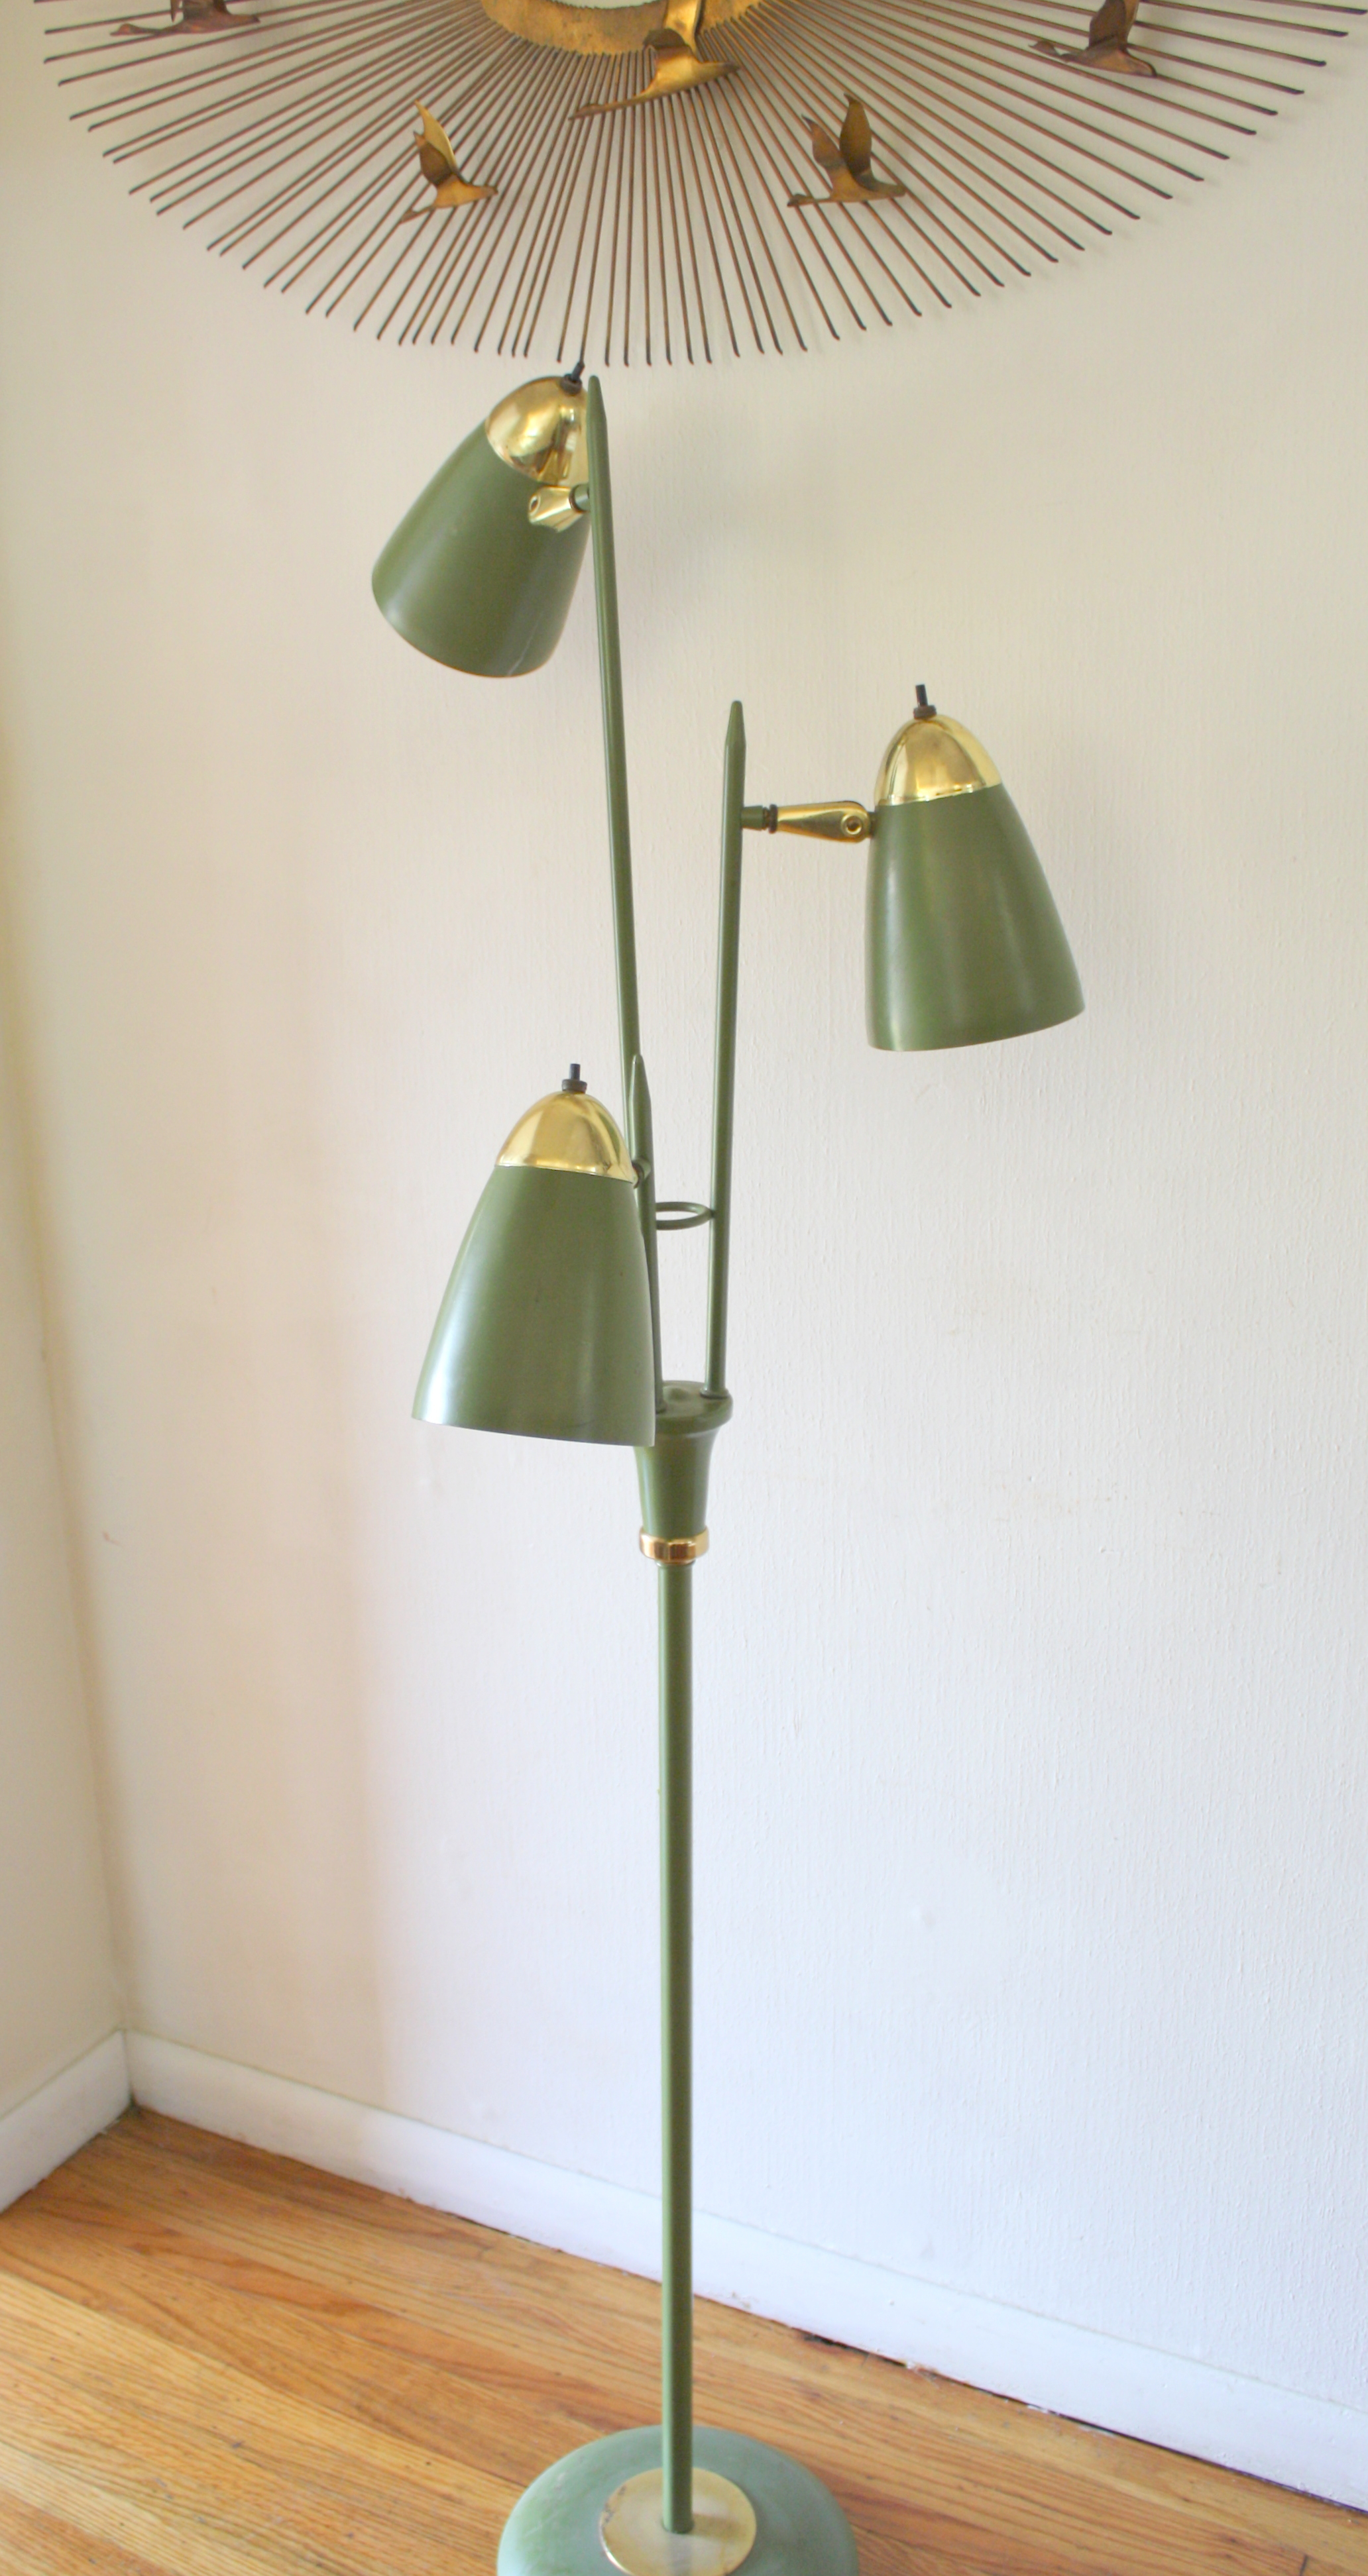 Mid Century Modern Bullet Floor Lamps Picked Vintage pertaining to sizing 2064 X 3888